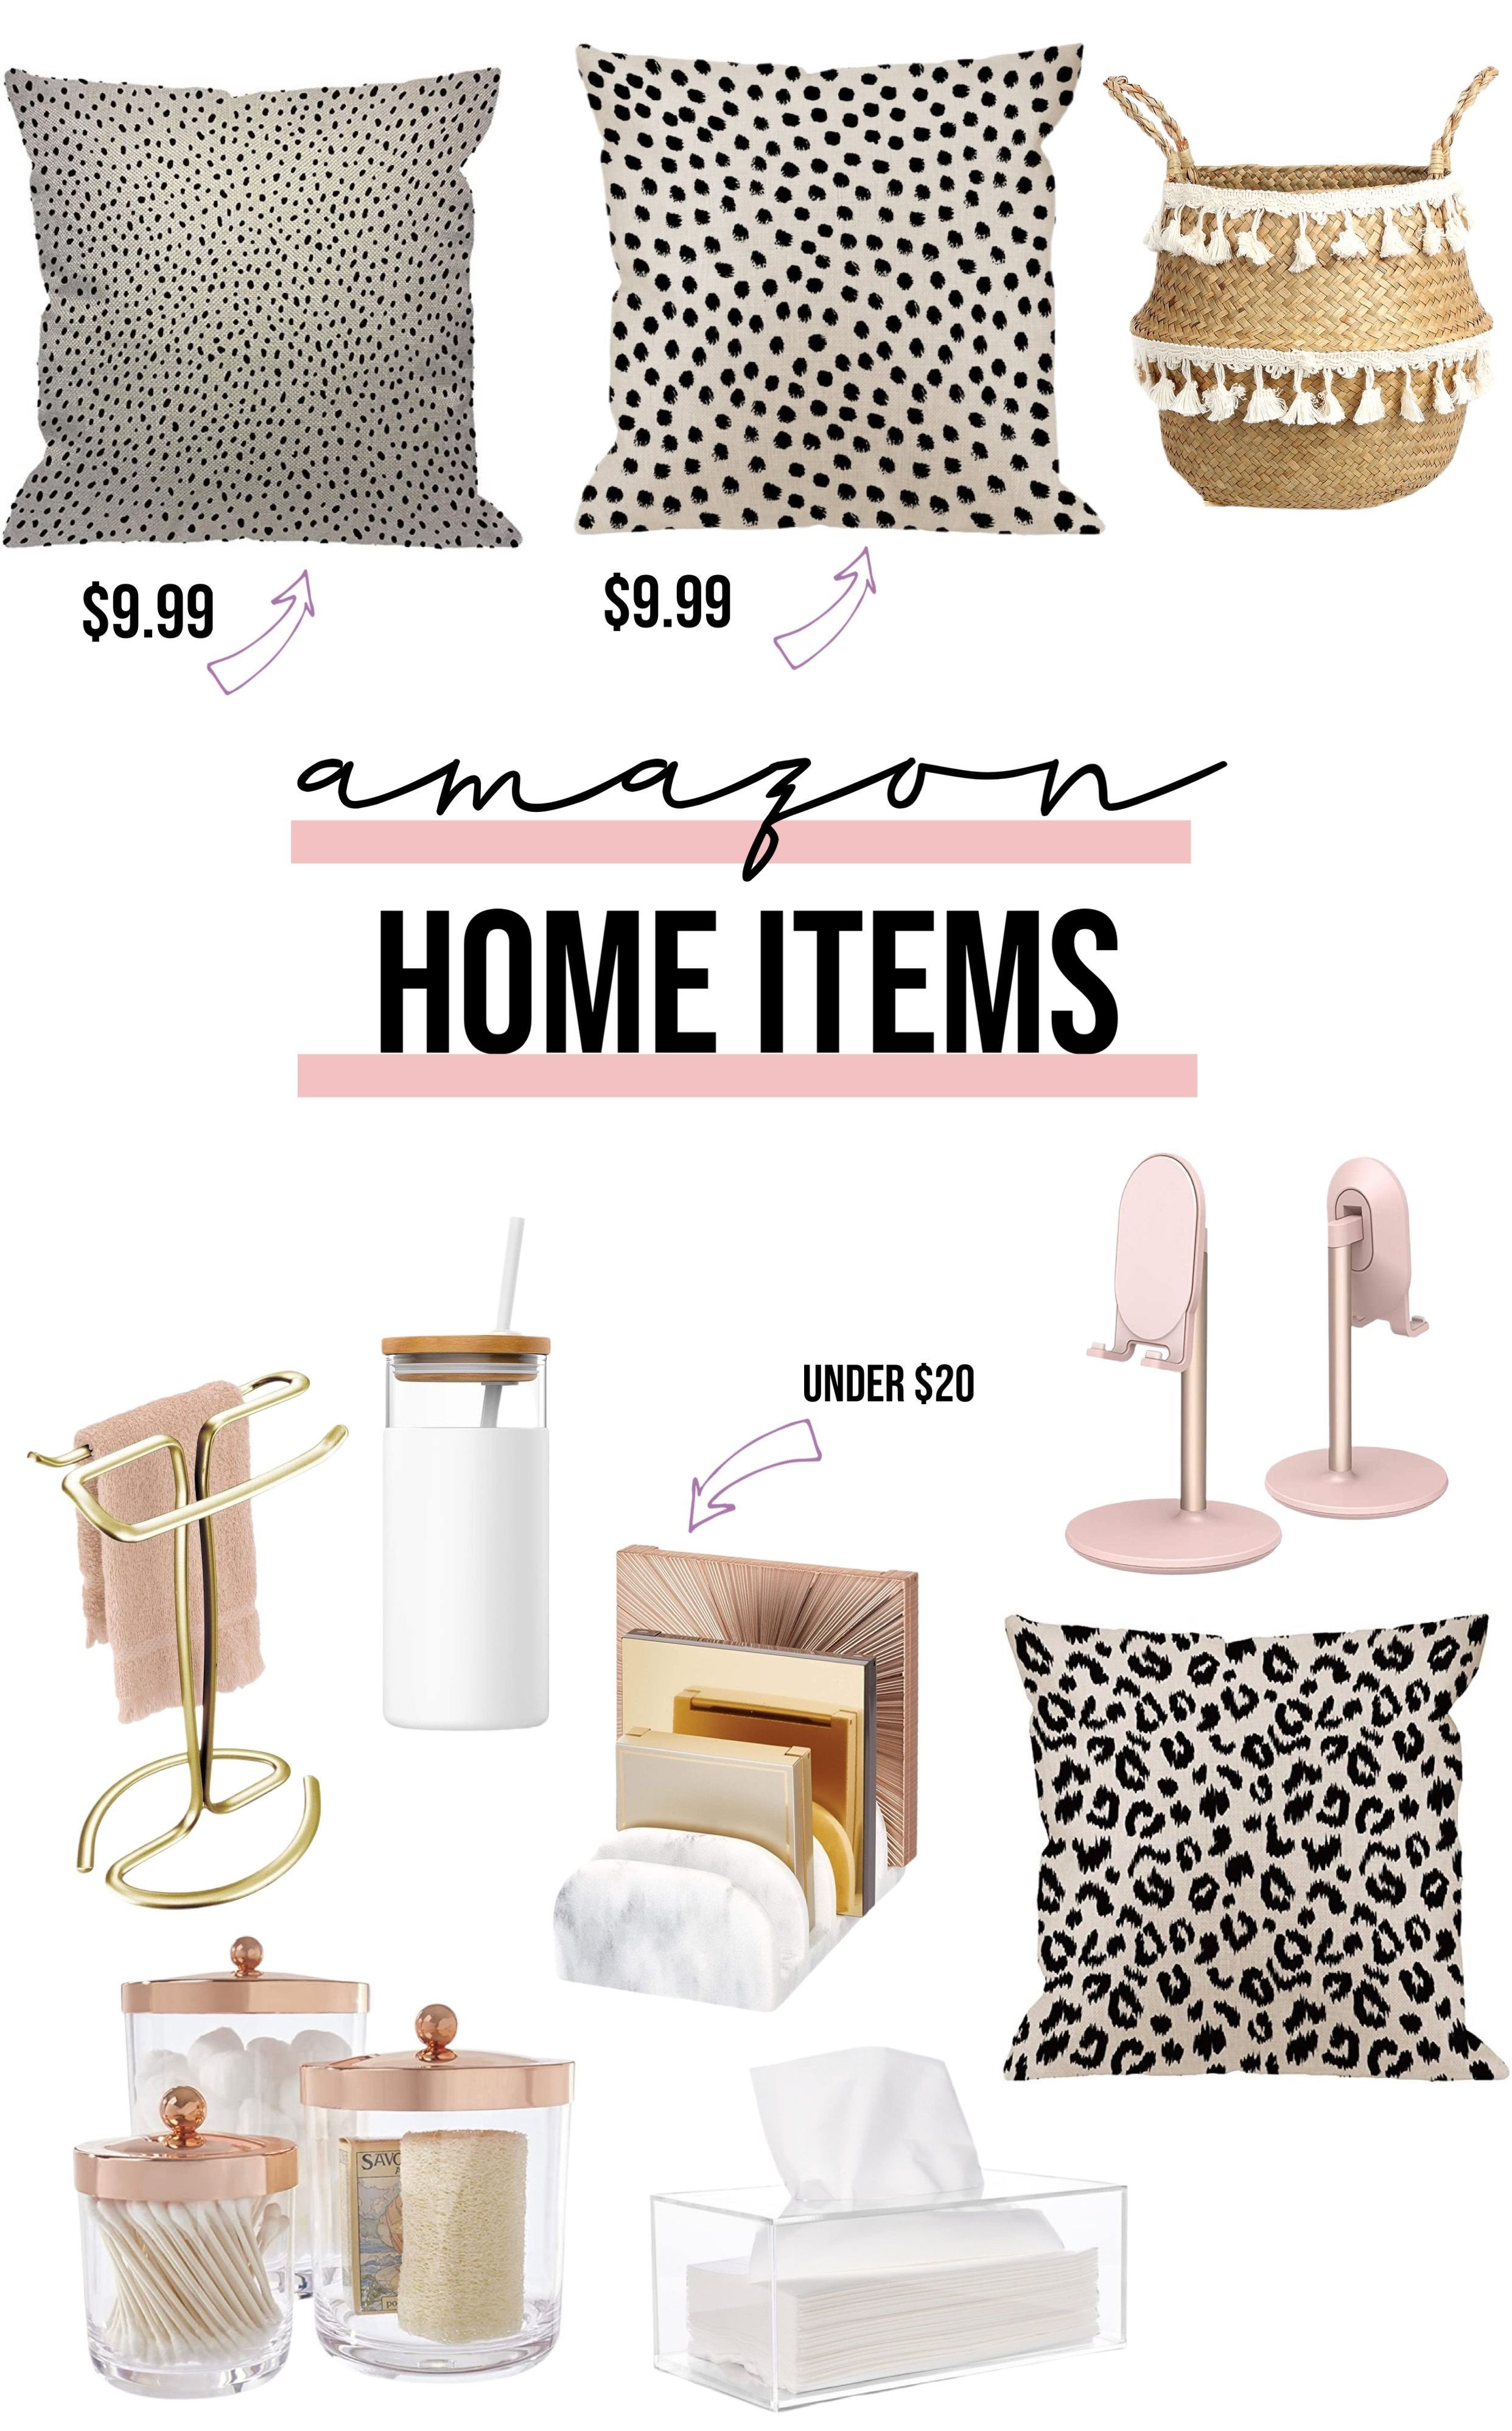 Amazon Home Decor Items That Are Budget Friendly Amazon Home Decor Home Decor Items Home Decor